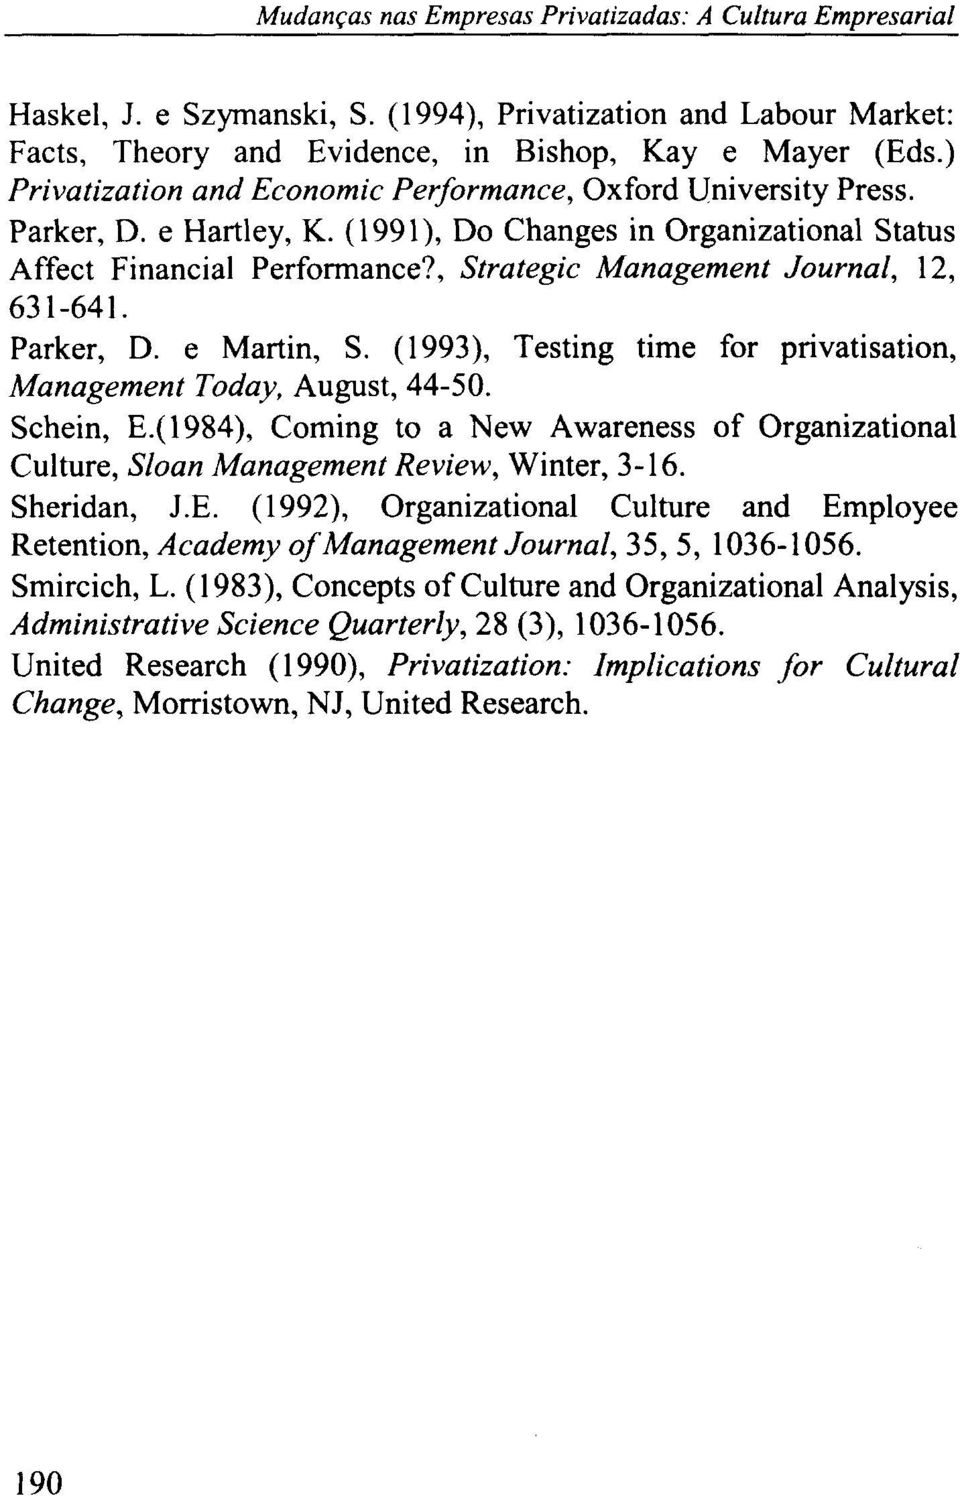 , Strategic Management Journal, 12, 631-641. Parker, D. e Martin, S. (1993), Testing time for privatisation, Management Today, August, 44-50. Schein, E.